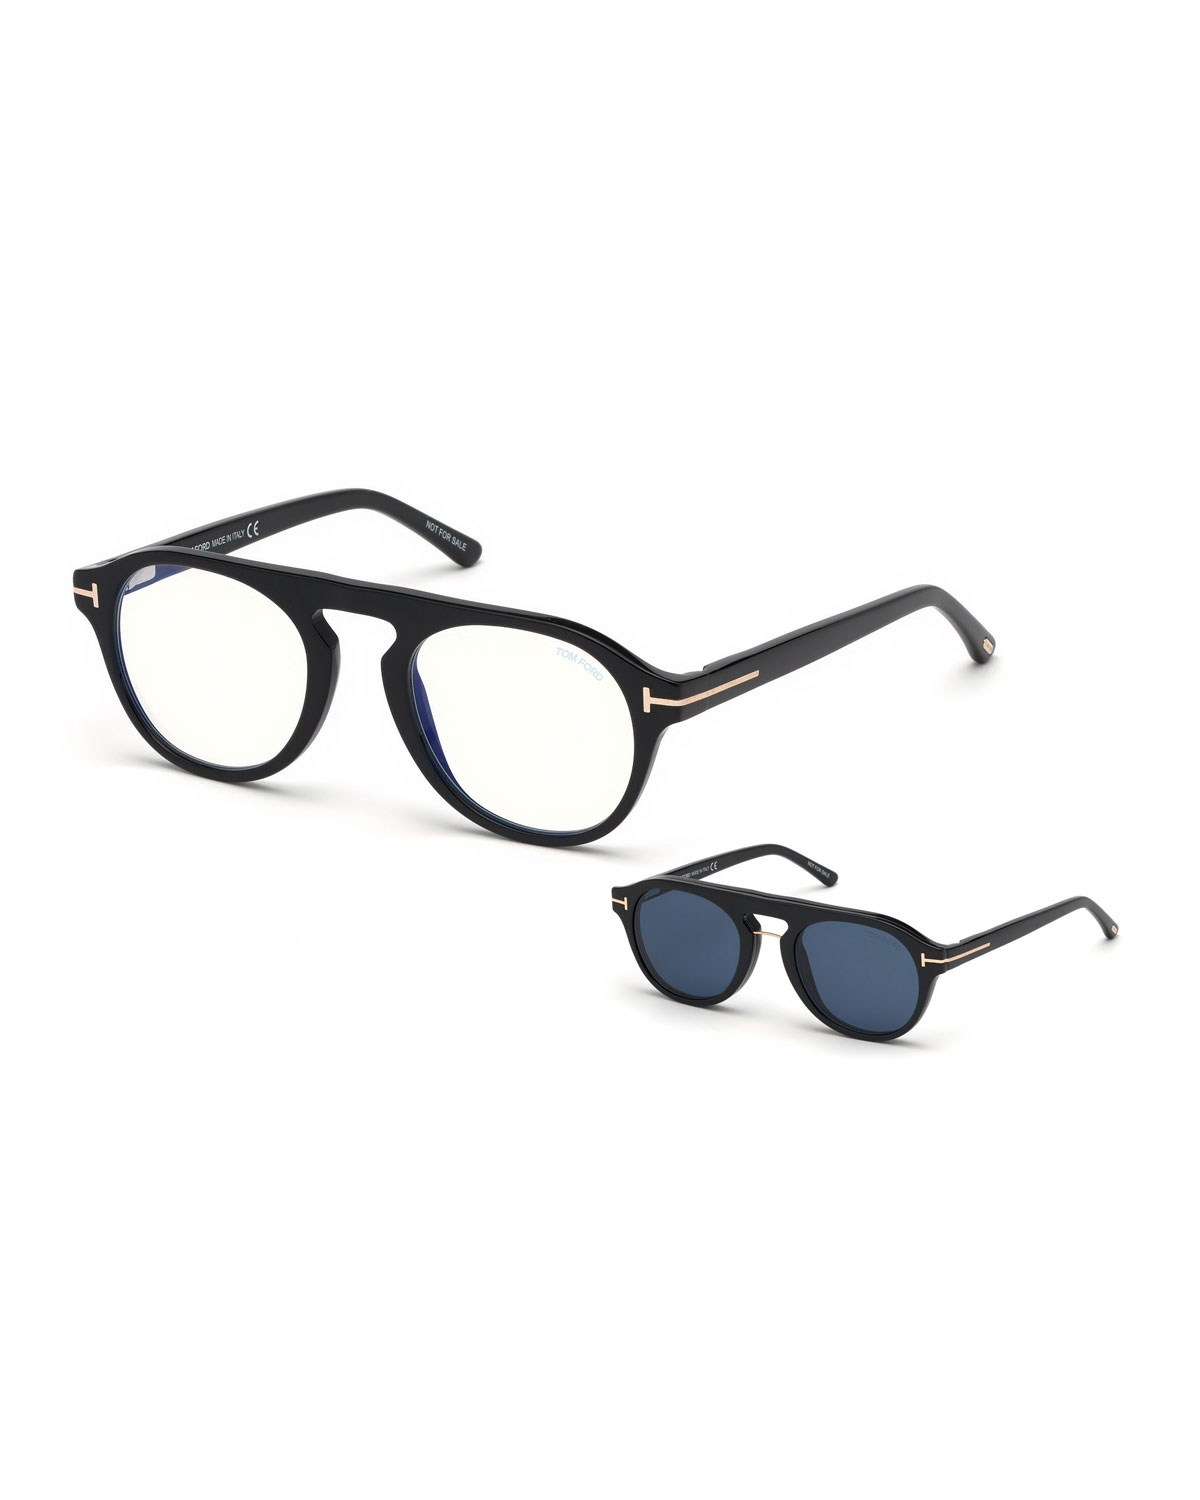 3803a87ed5 TOM FORDMen s Round Optical Glasses w  Magnetic Clip On Blue-Block Shade